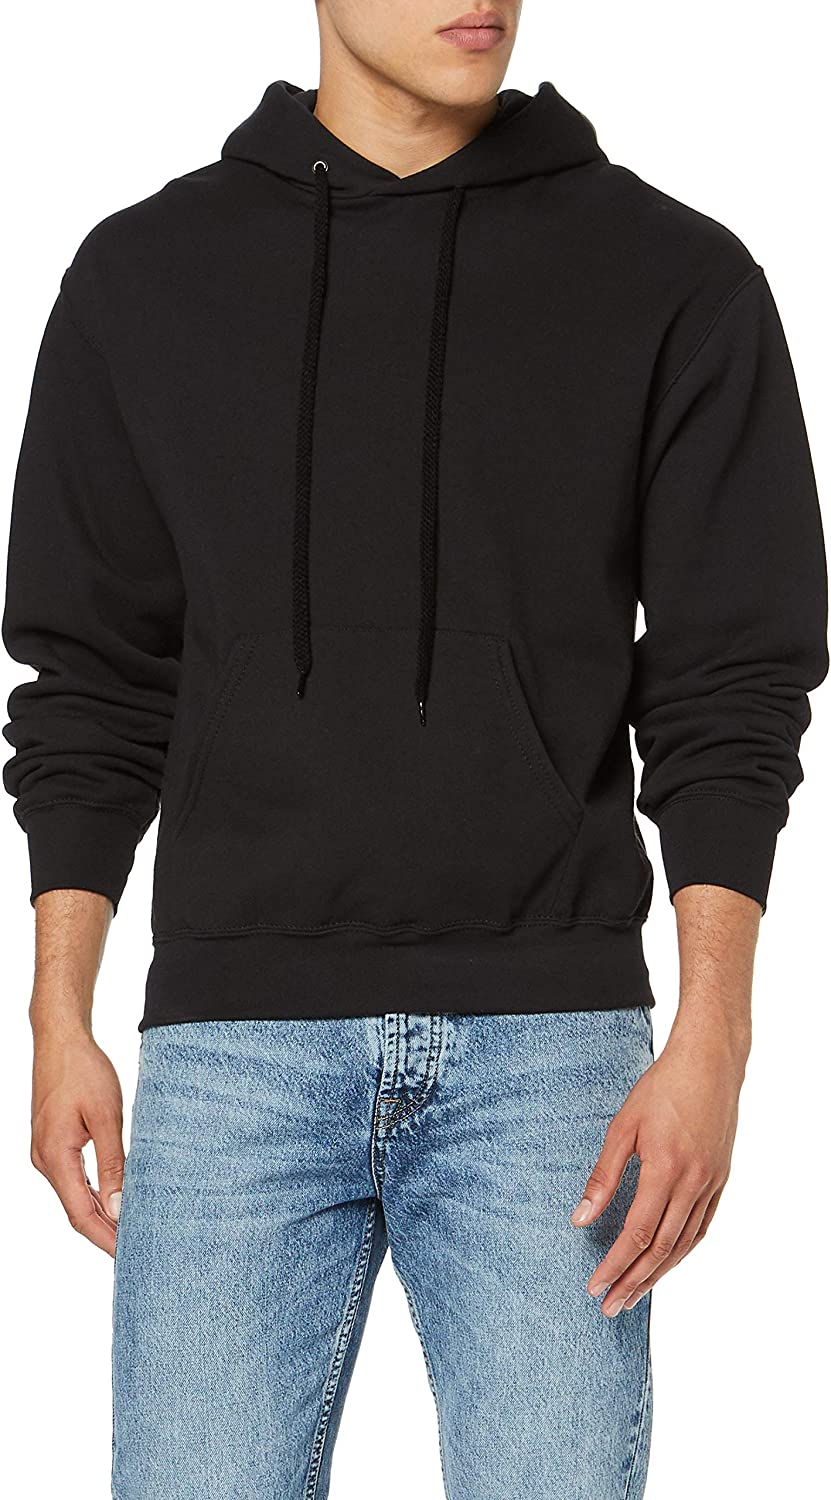 TALLA S. Fruit of the Loom 12208B, Sudadera con Capucha Para Hombre